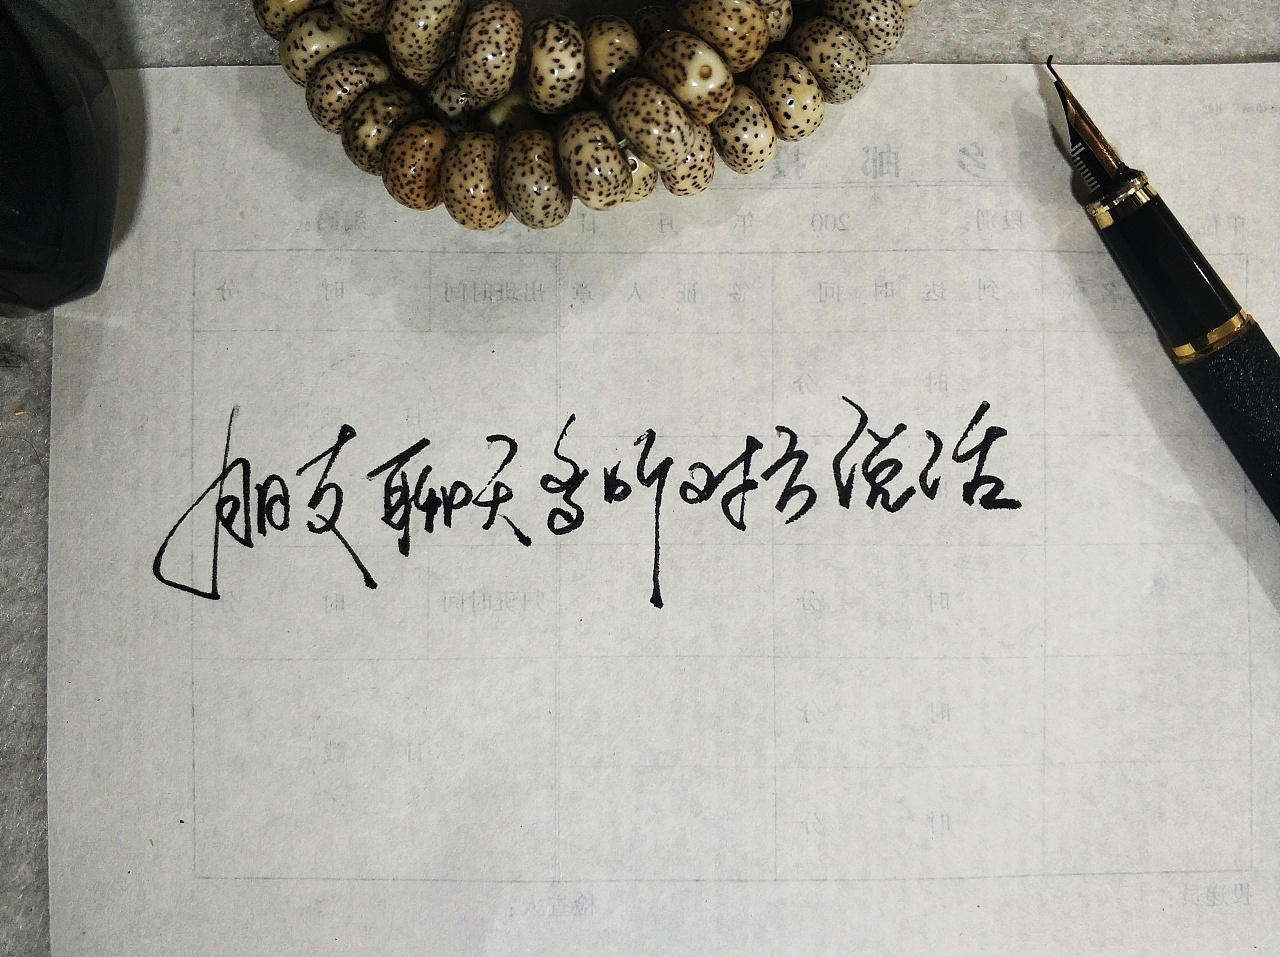 Chinese Creative Pen Font Design-Don't doubt your decision easily.